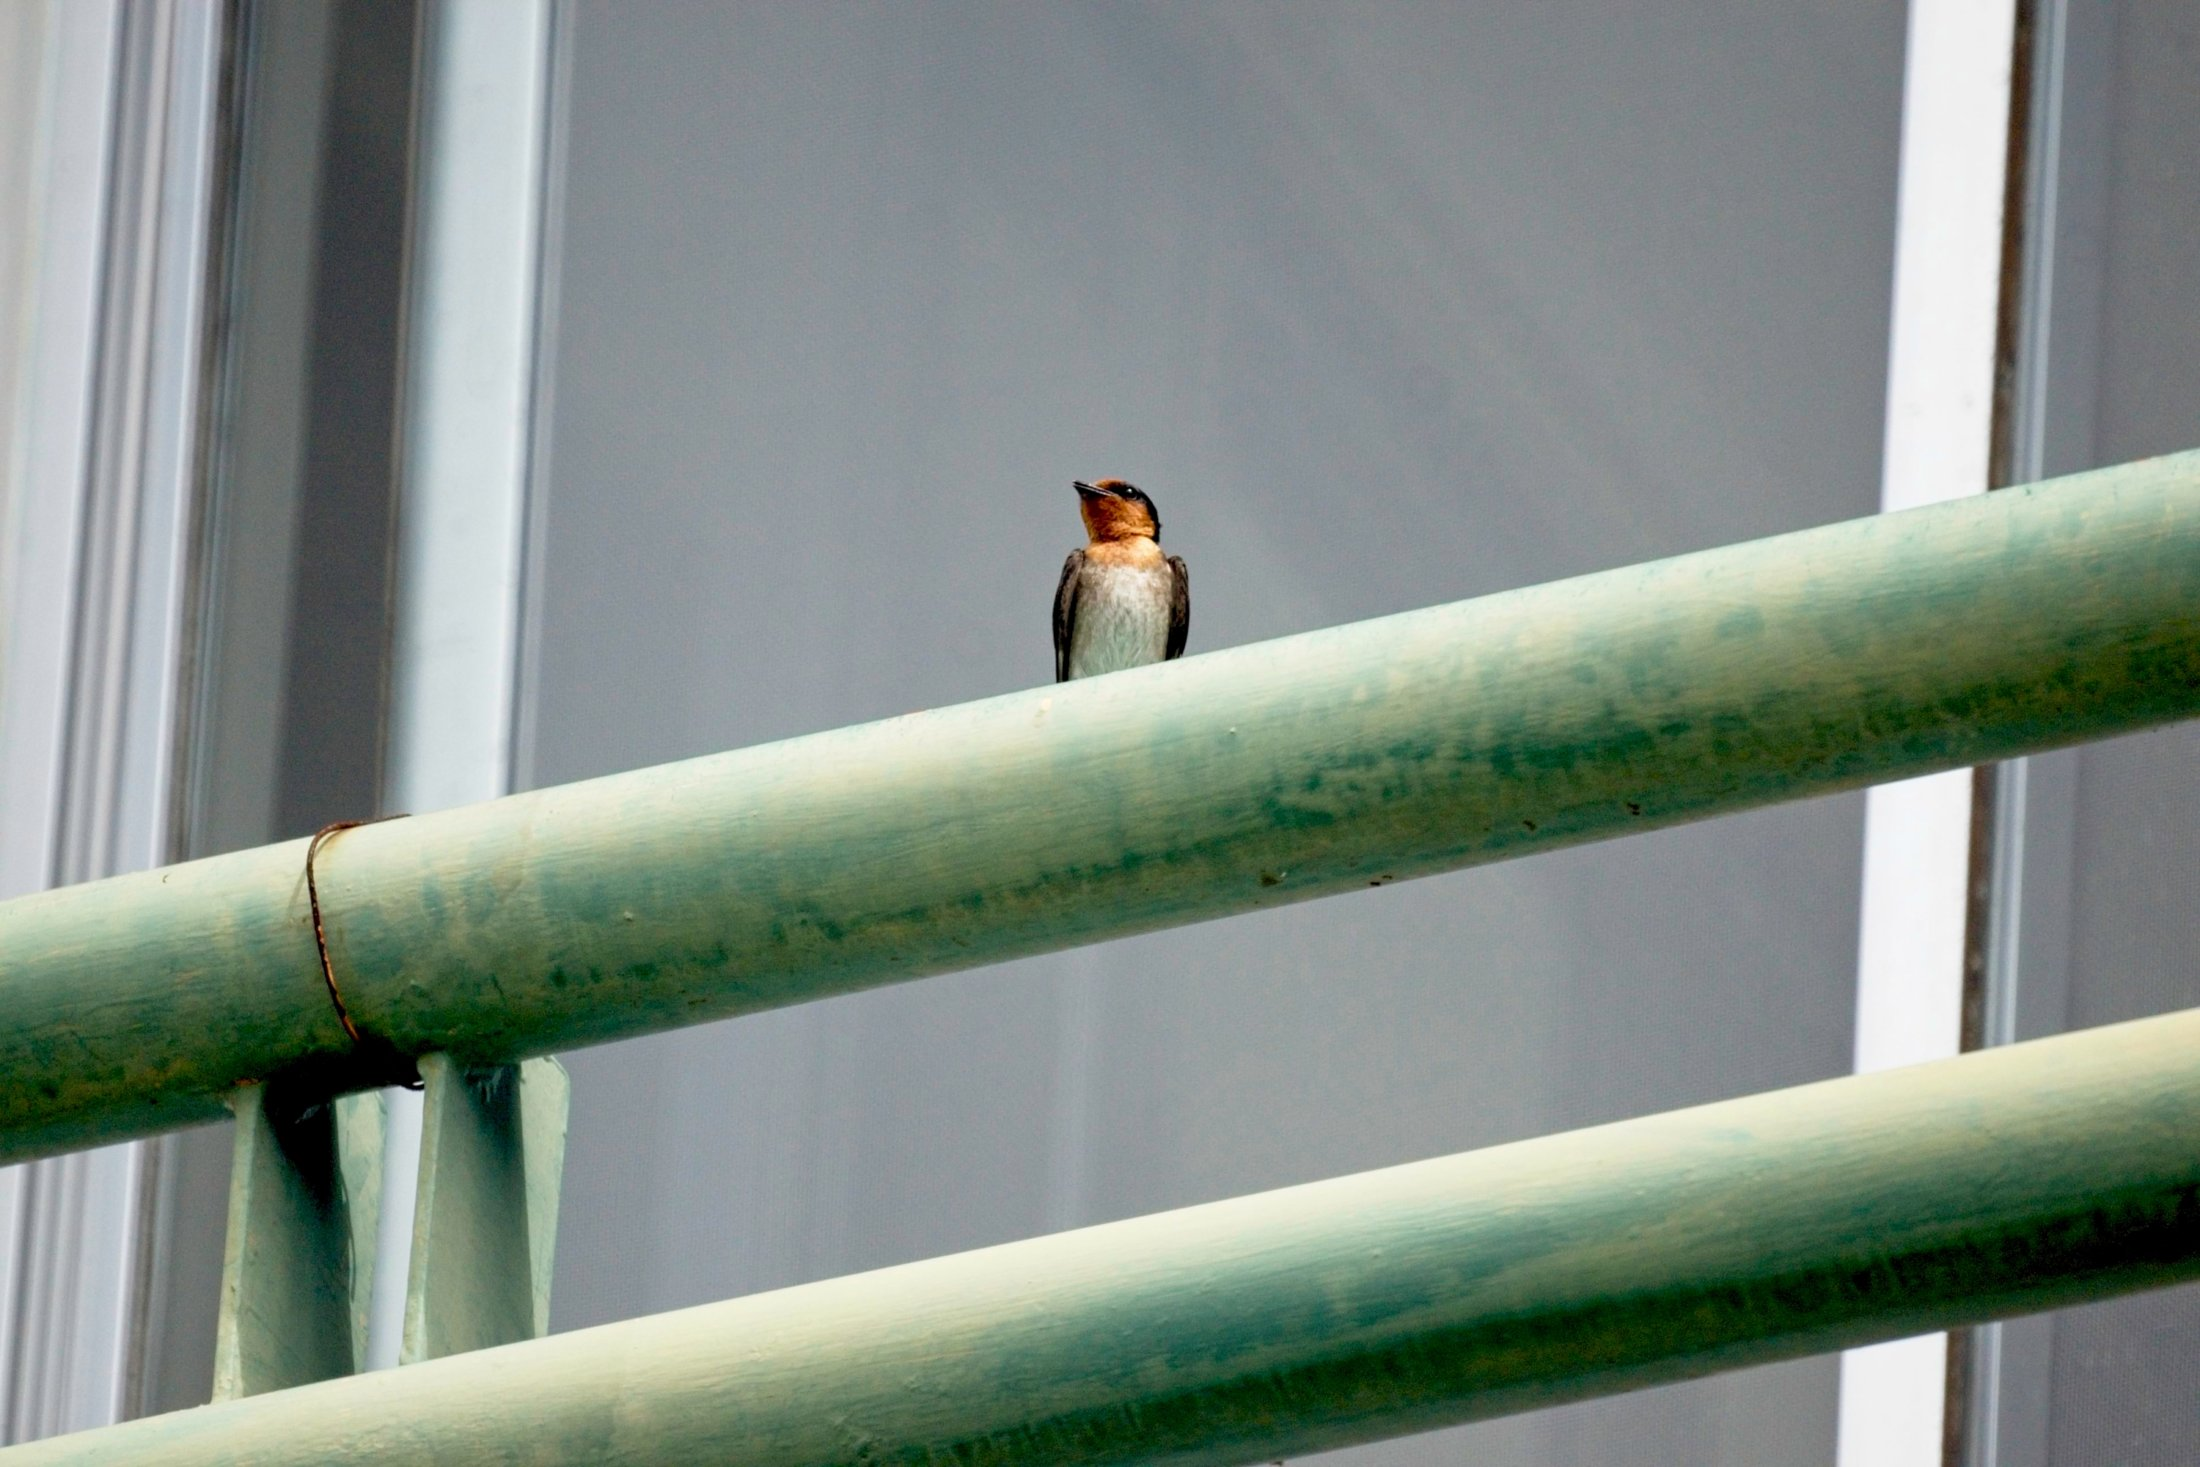 House Swallow - Hirundo javanica